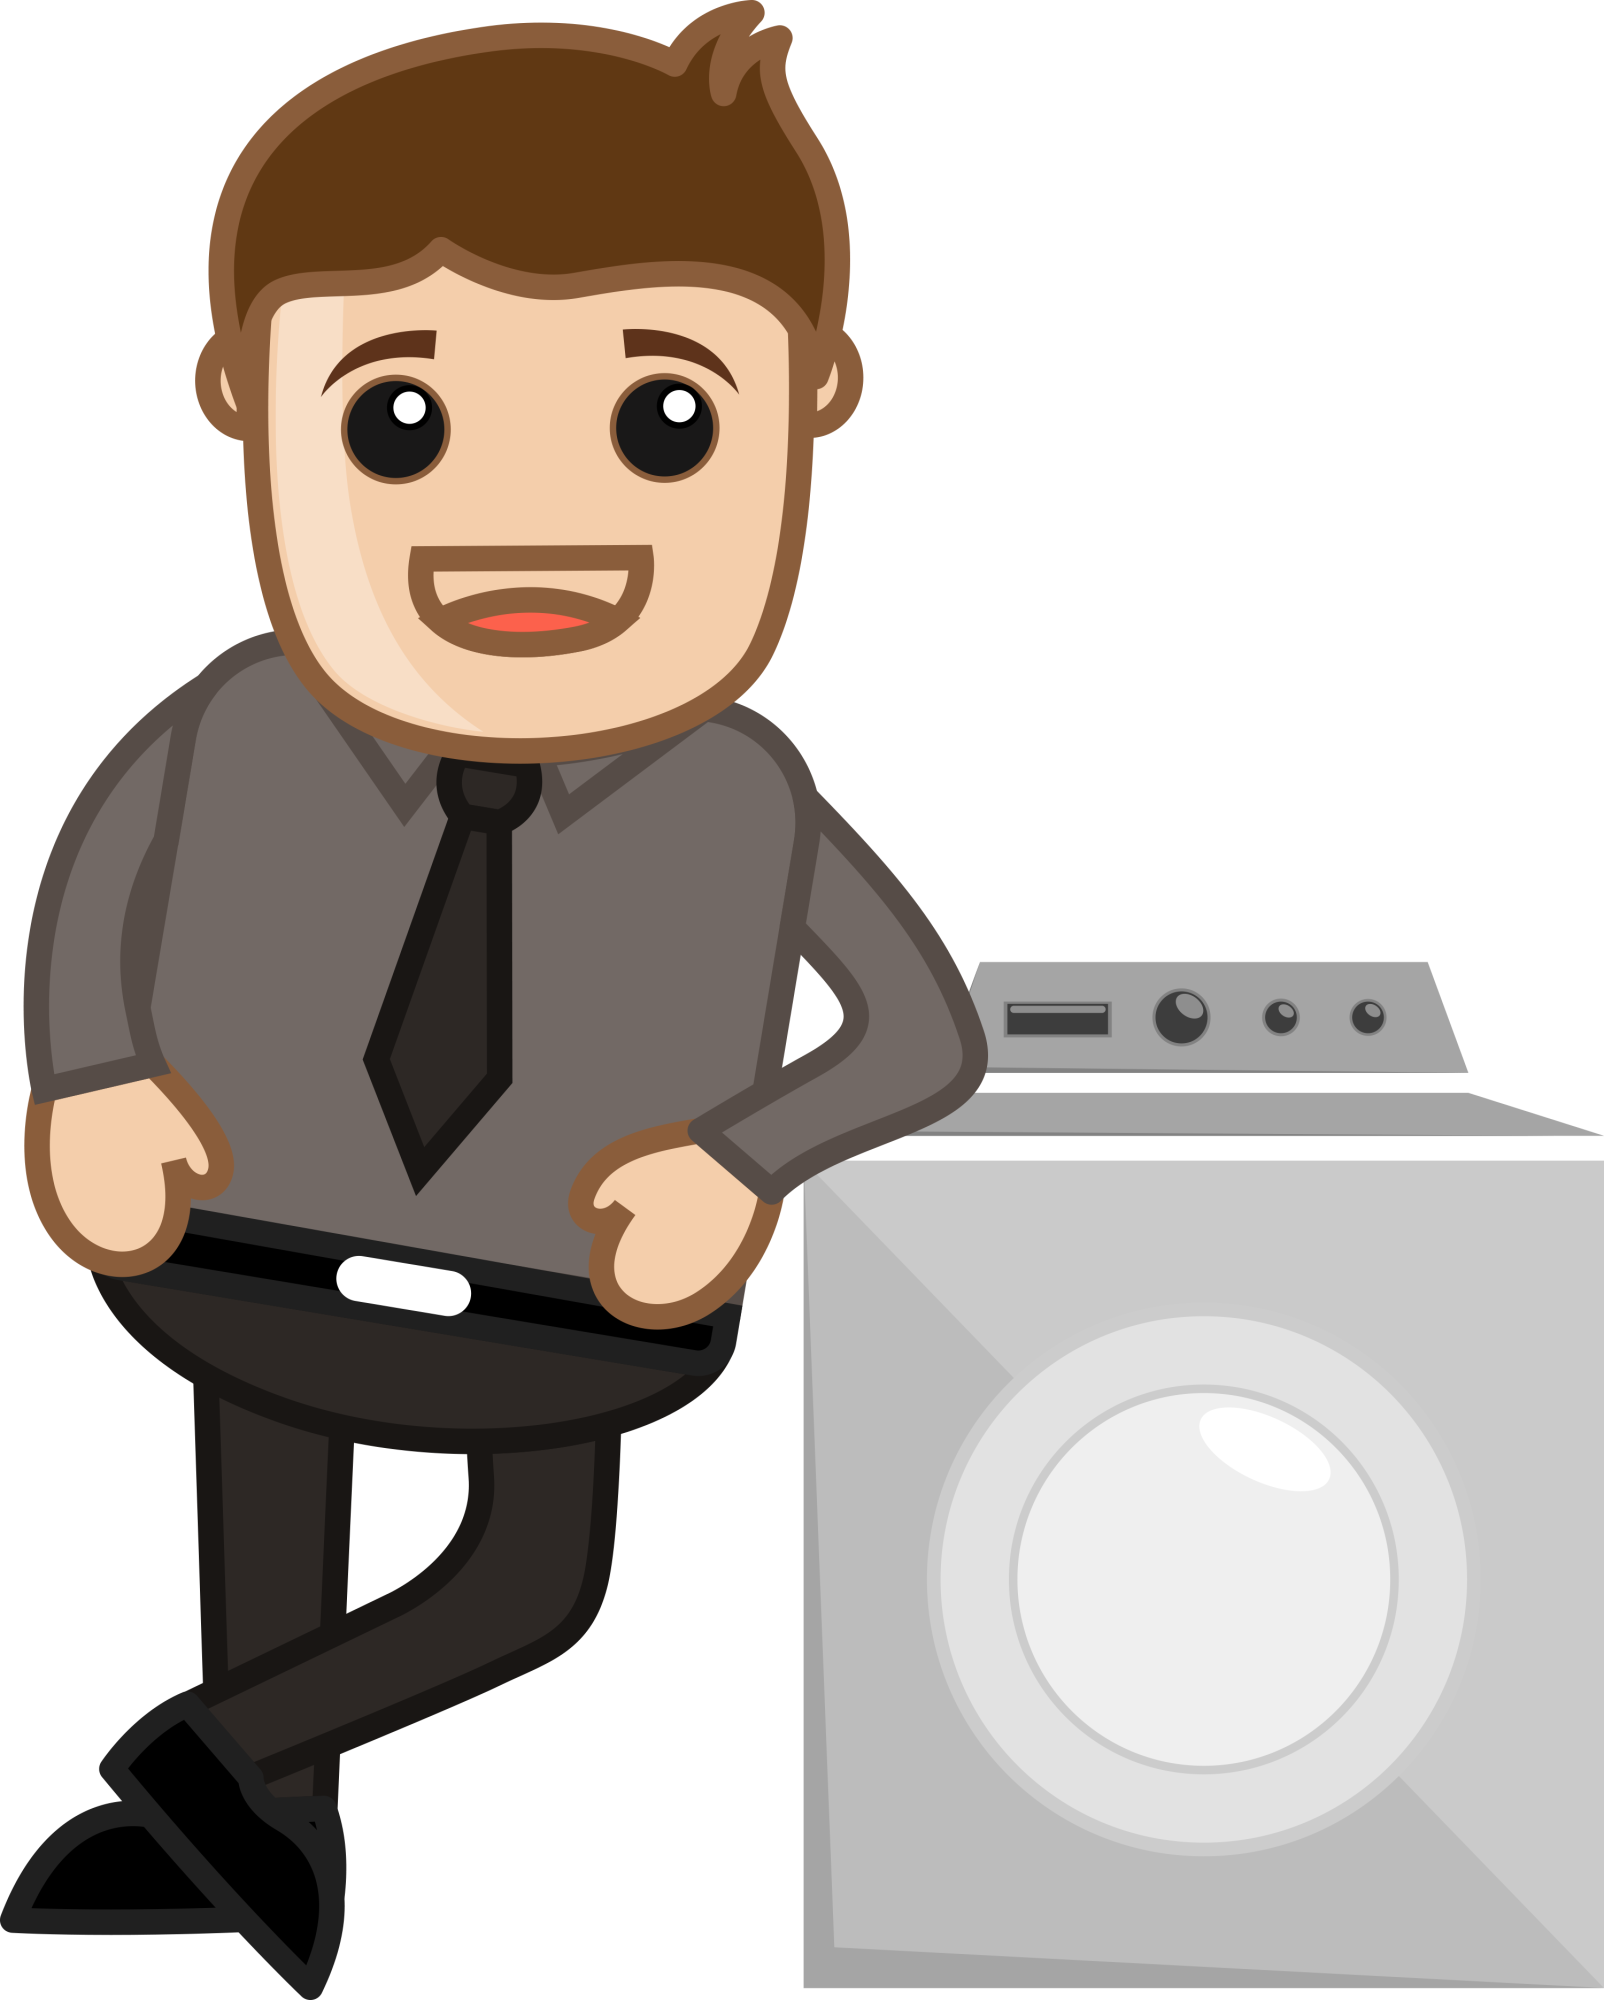 Dryer clipart dryer vent cleaning. Clip art library cliparts